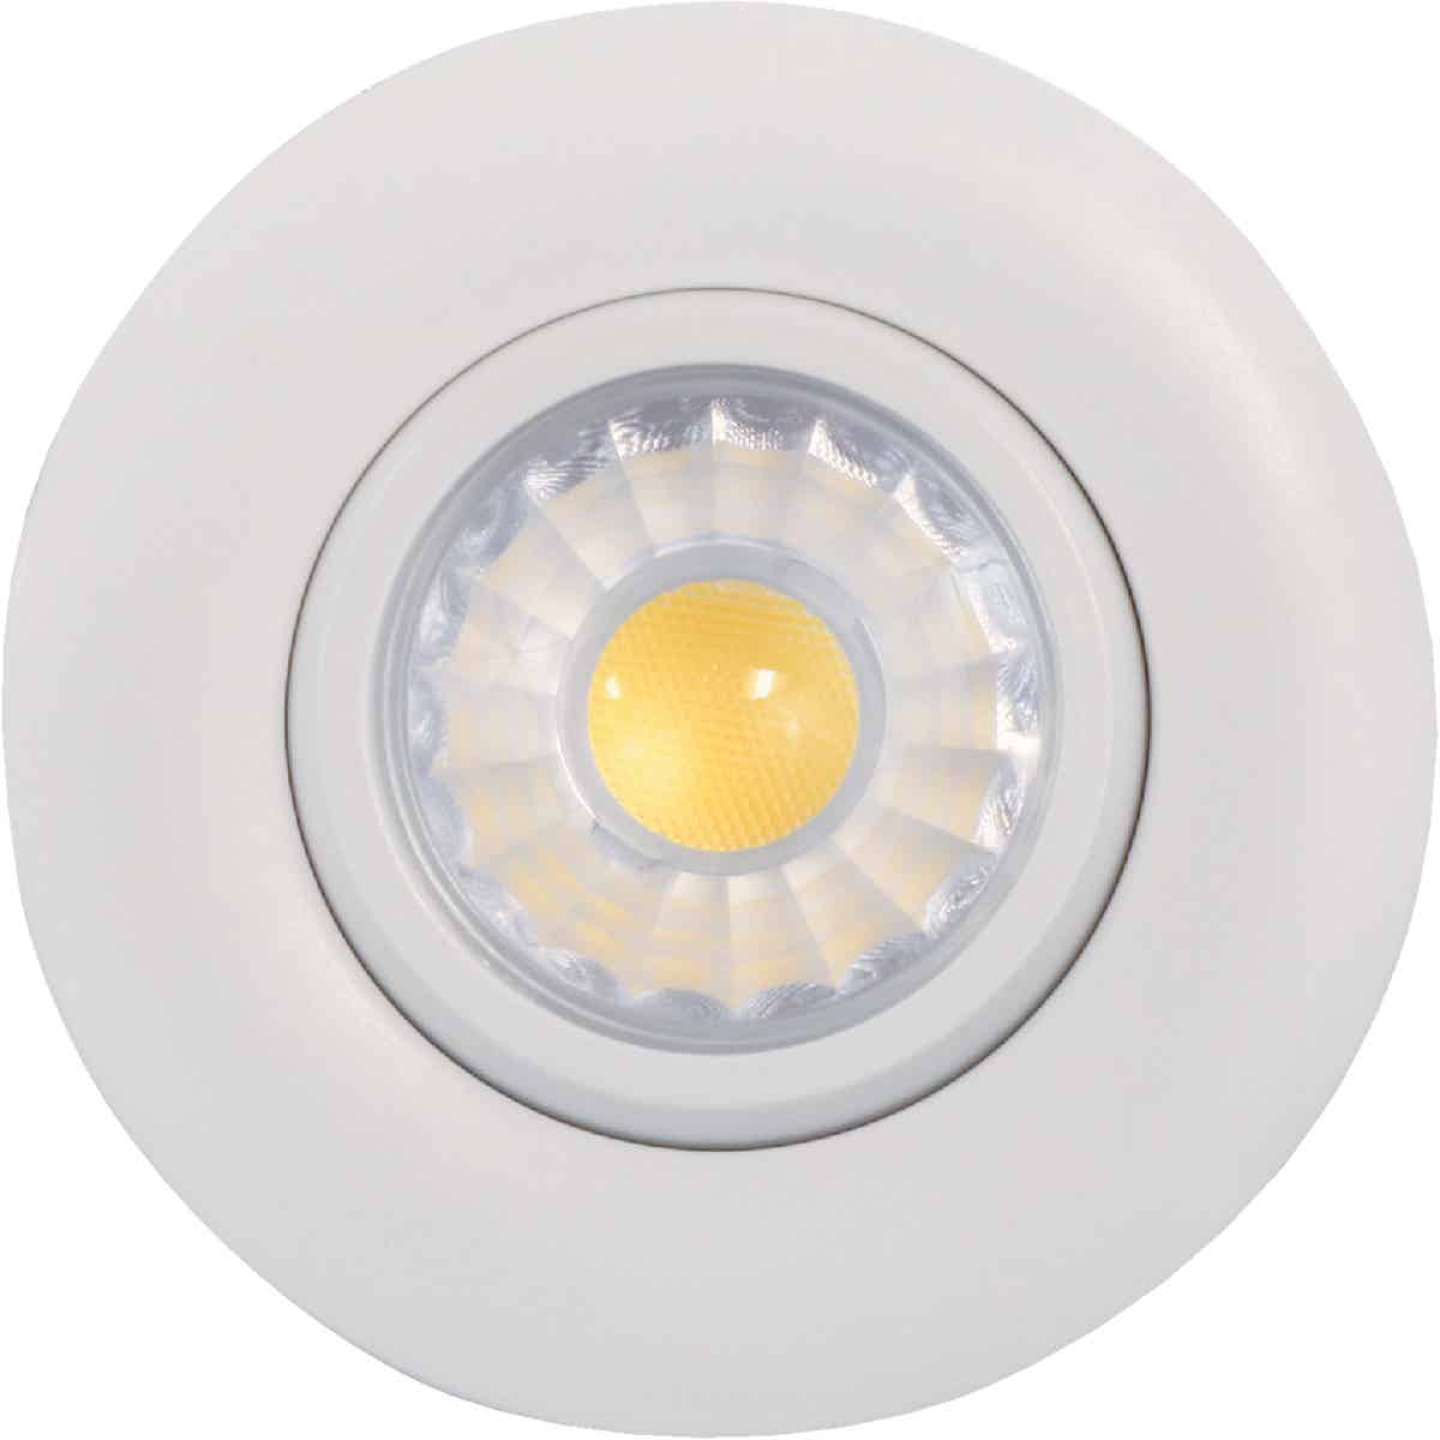 Liteline Trenz Retina 3 In. New Construction/Remodel IC Rated White 4000K Gimbal Recessed Light Kit Image 1